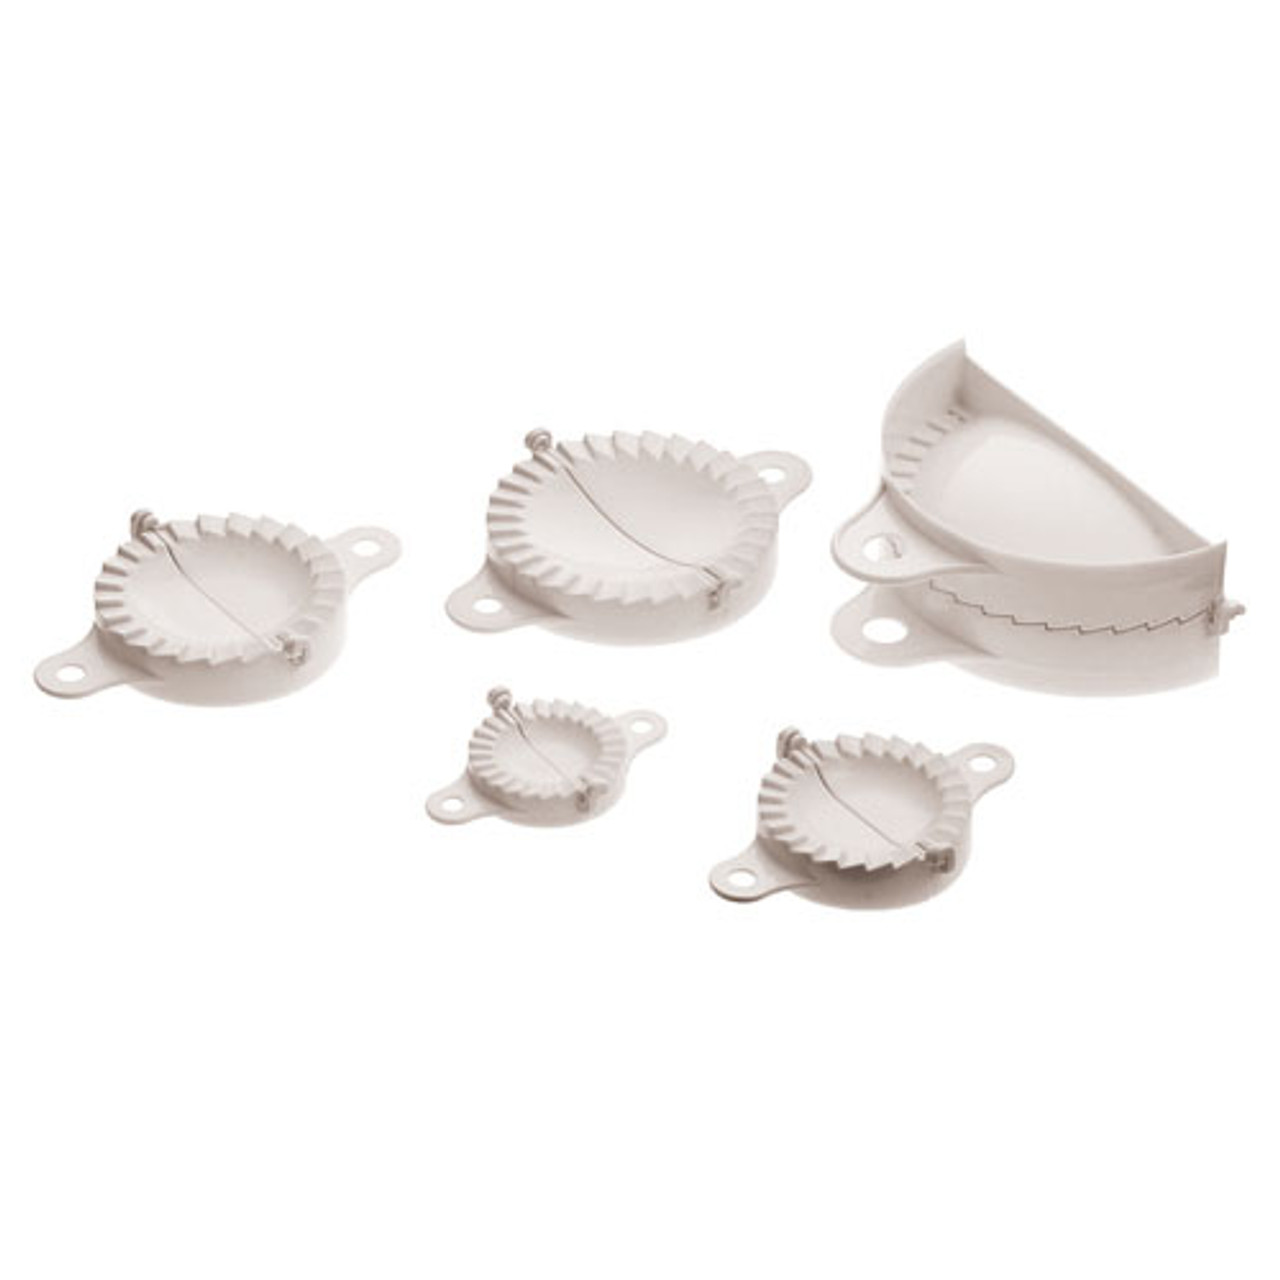 Set of Five Dumpling Molds, L 7 x W 4 x H 1